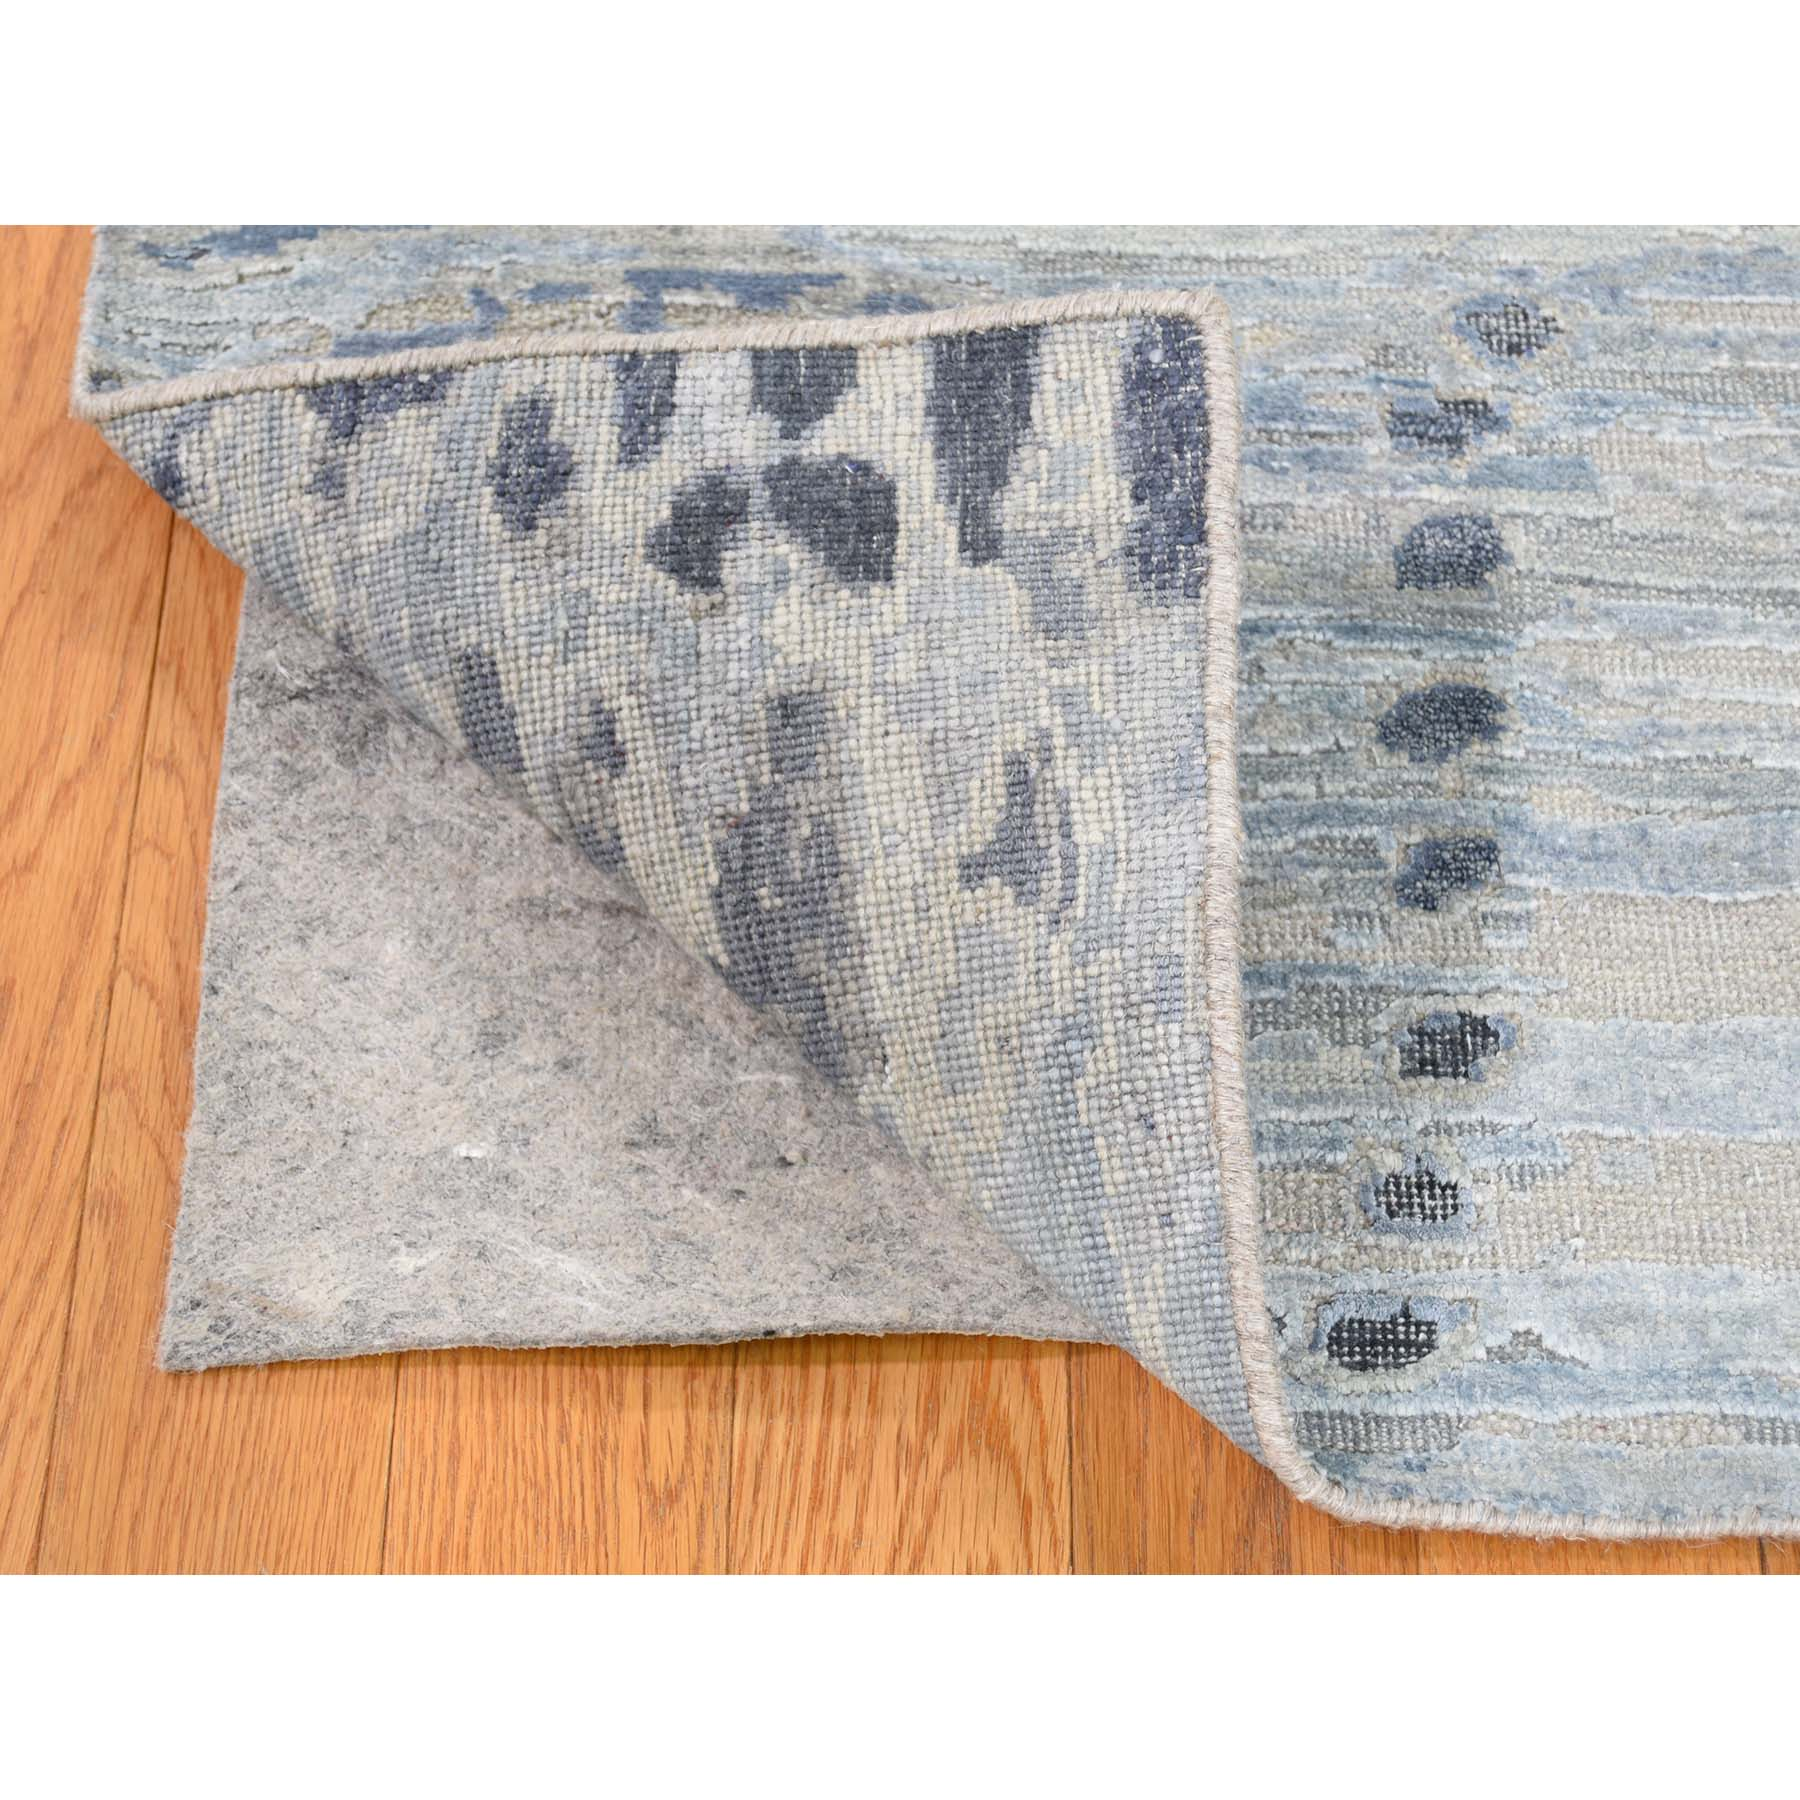 2-x2-3  Sampler Textured Pure Silk With Textured wool Hand-Knotted Oriental Rug